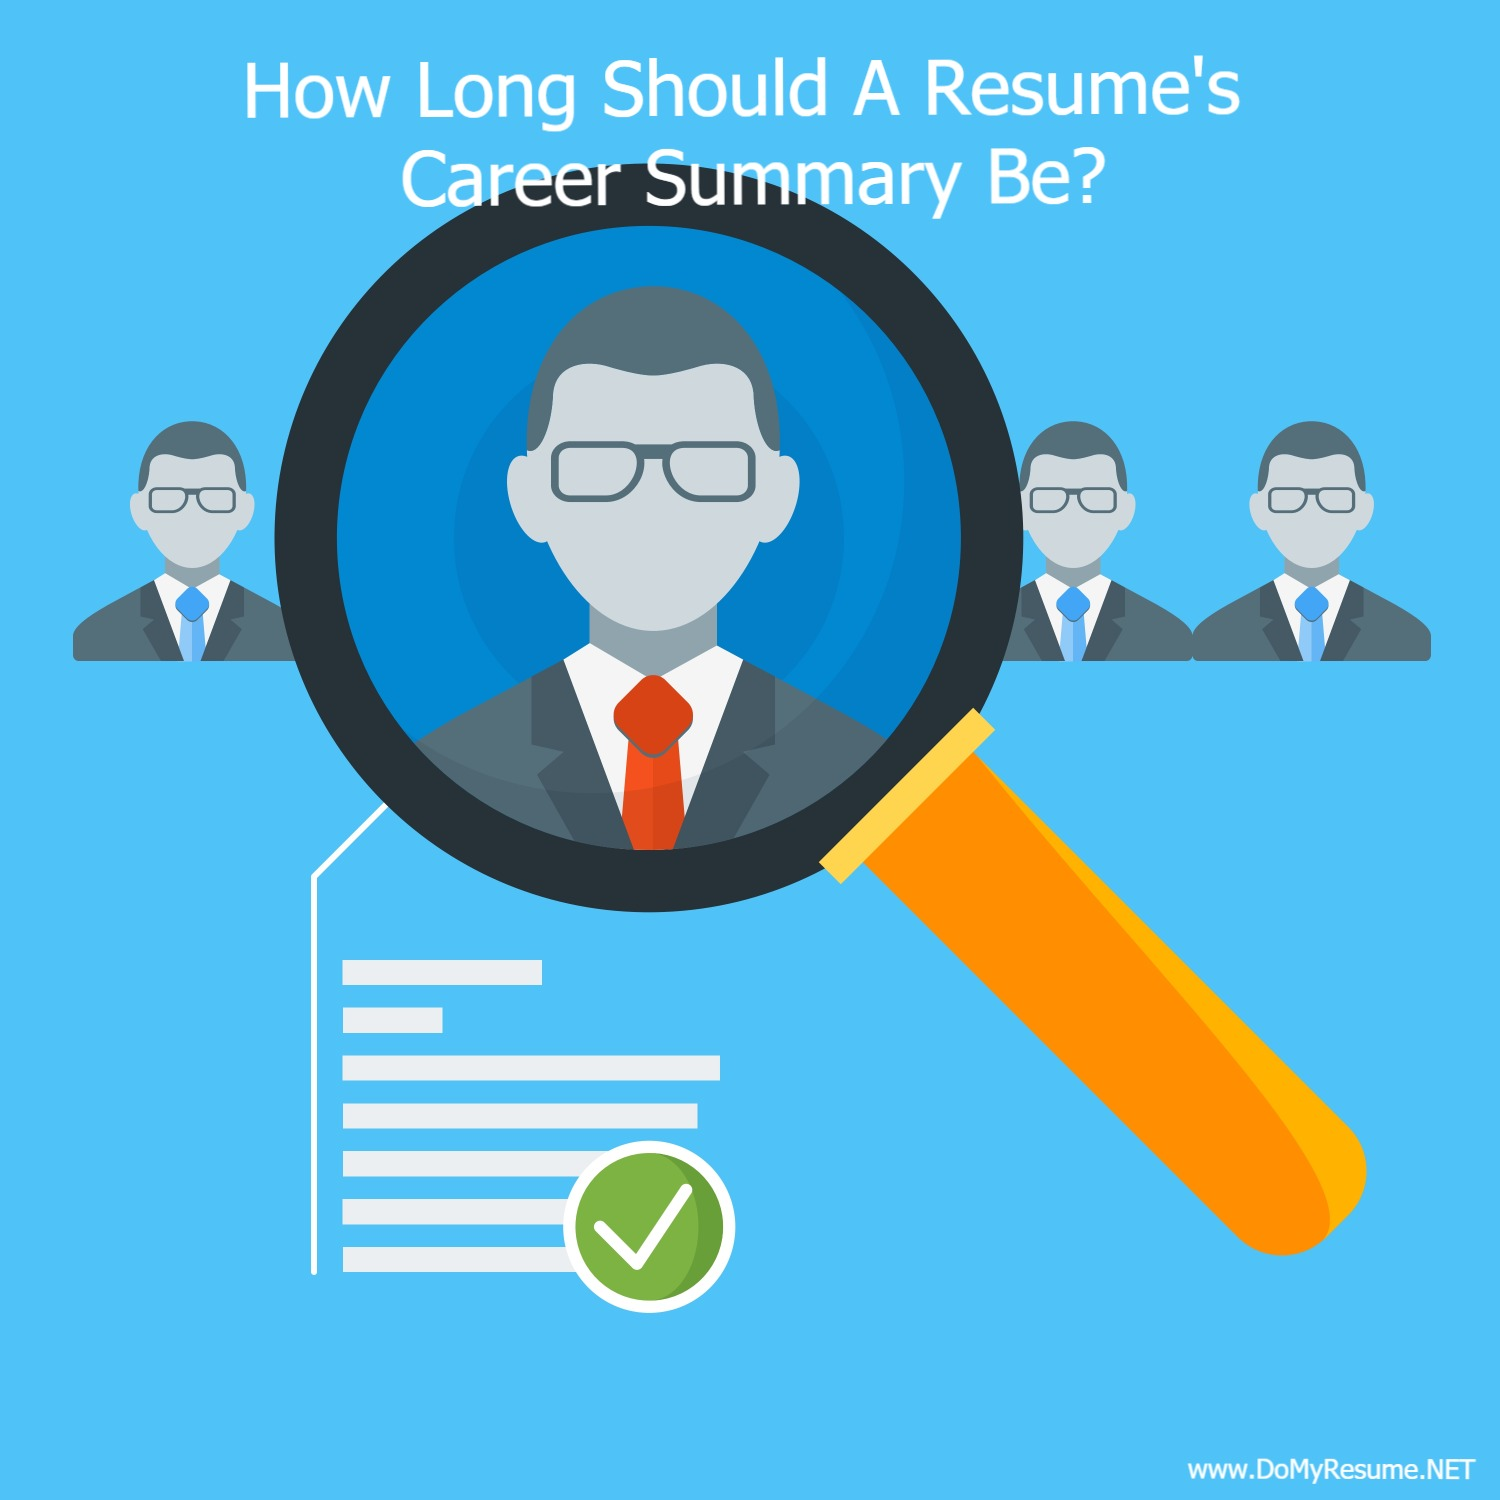 How Long Should The Career Summary On A Resume Be? | Ranked #1 ...